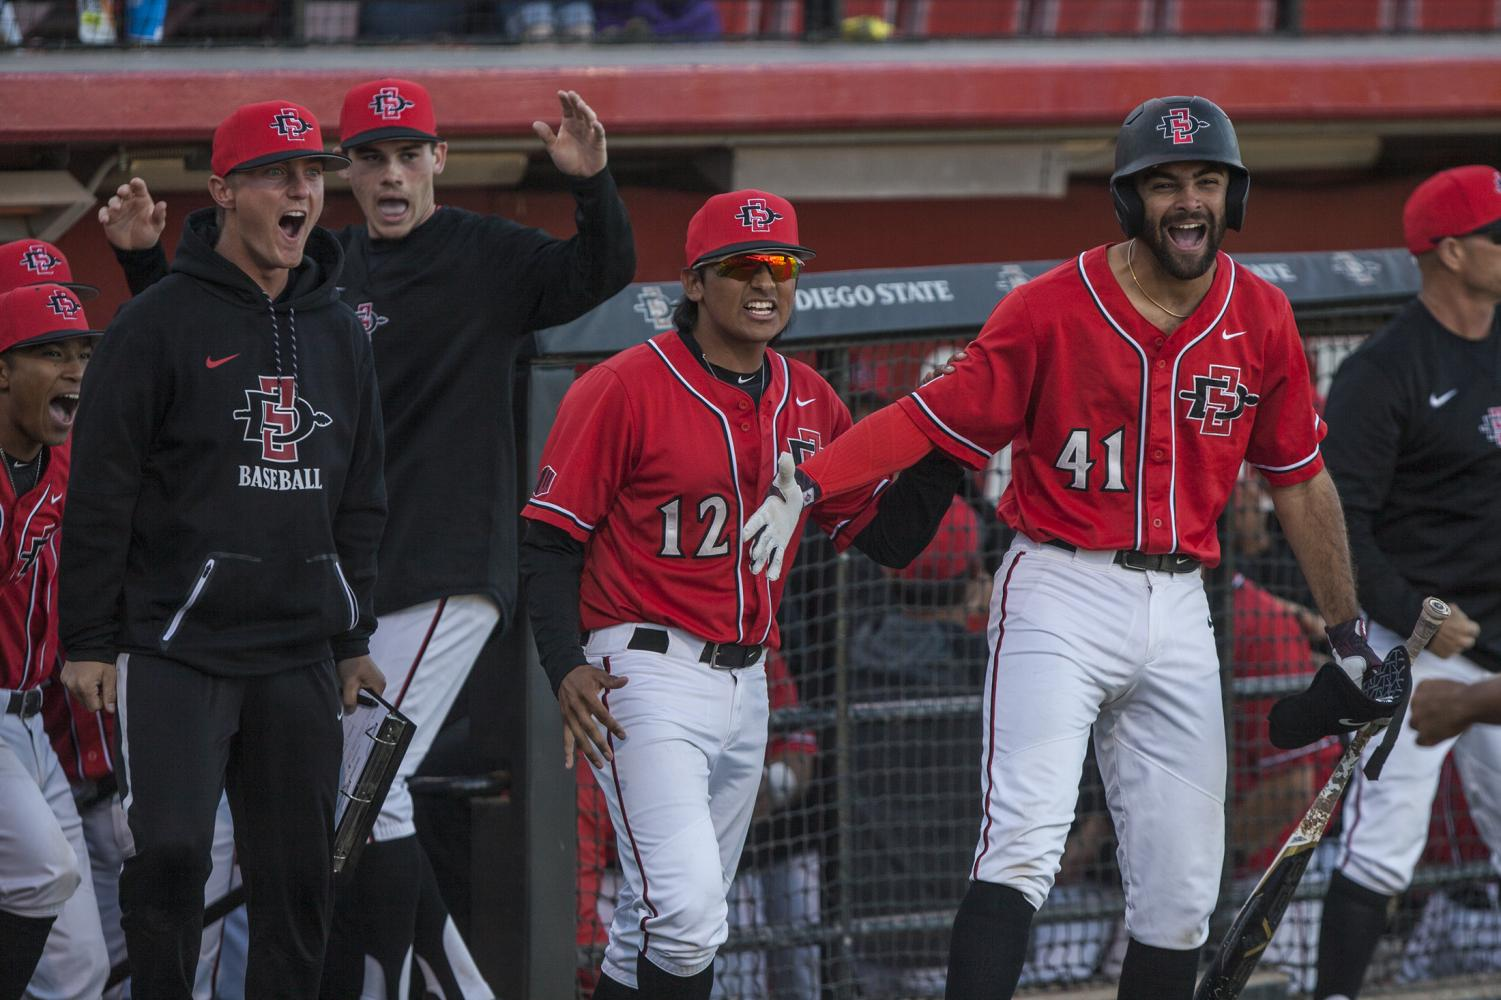 SDSU players celebrated outside the dugout amidst a four-run eighth inning during the Aztecs 5-4 win over Grand Canyon on Feb. 25 at Tony Gwynn Stadium.